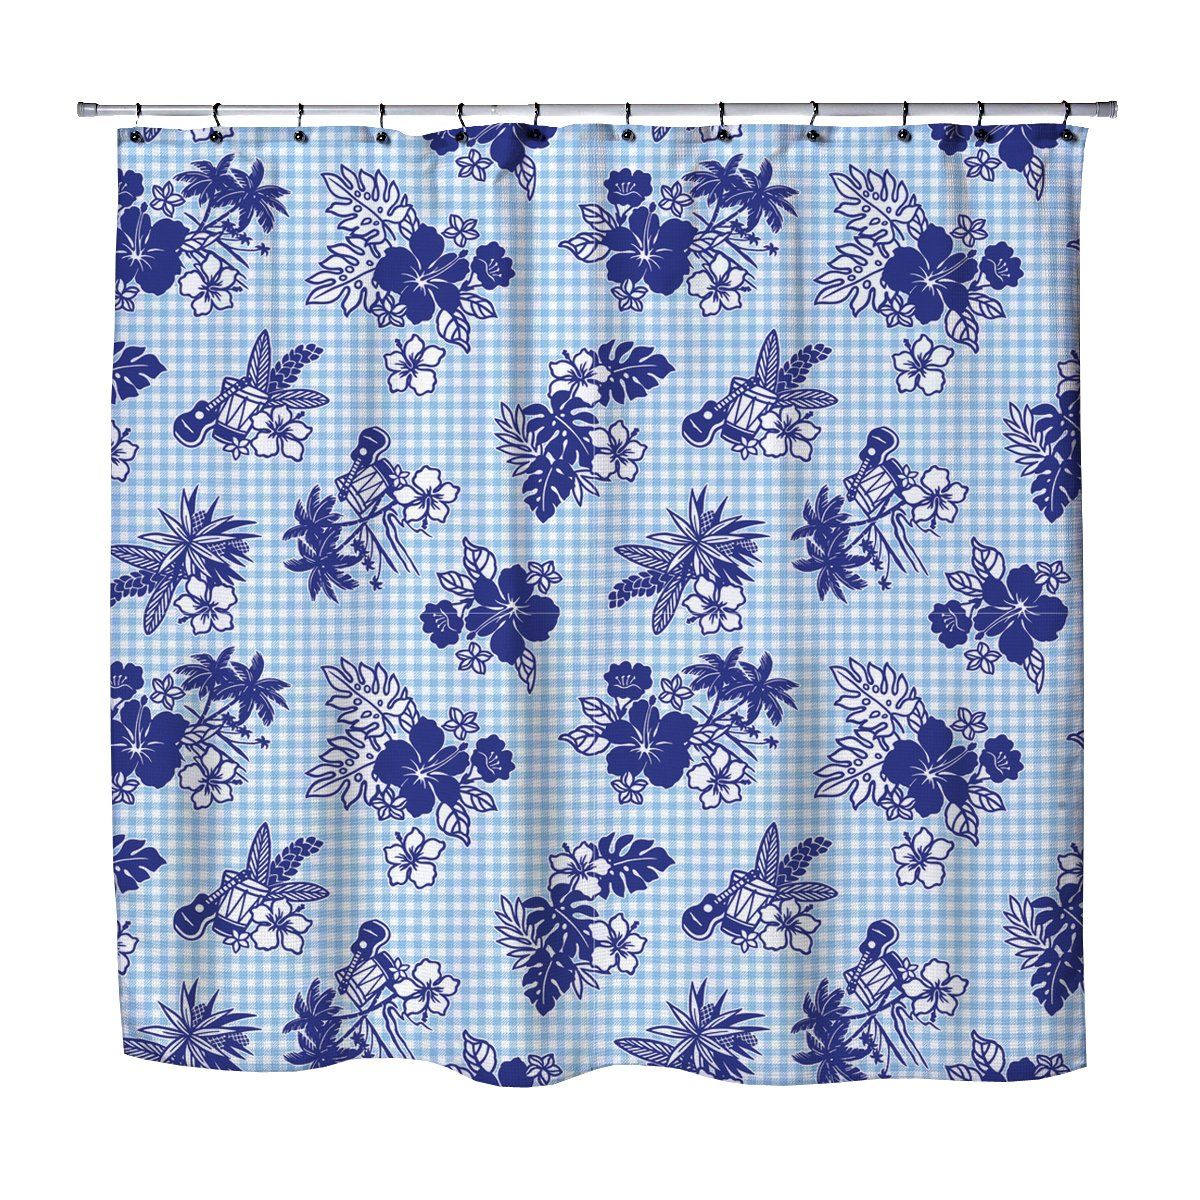 Baby Blue Gingham Vintage Hawaiian Style Shower Curtain Hawaiian